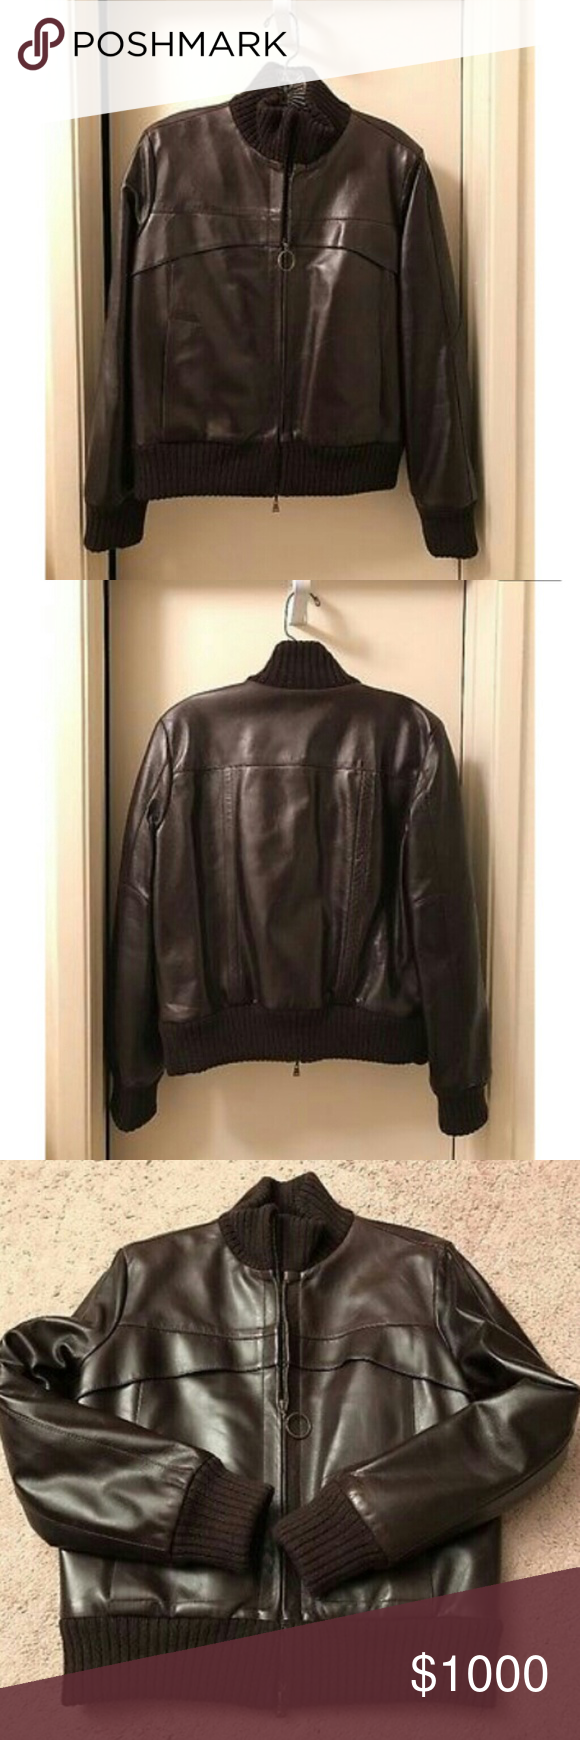 Louis Vuitton Women S Brown Leather Bomber Jacket Brown Leather Bomber Jacket Leather Bomber Jacket Leather Bomber [ 1740 x 580 Pixel ]